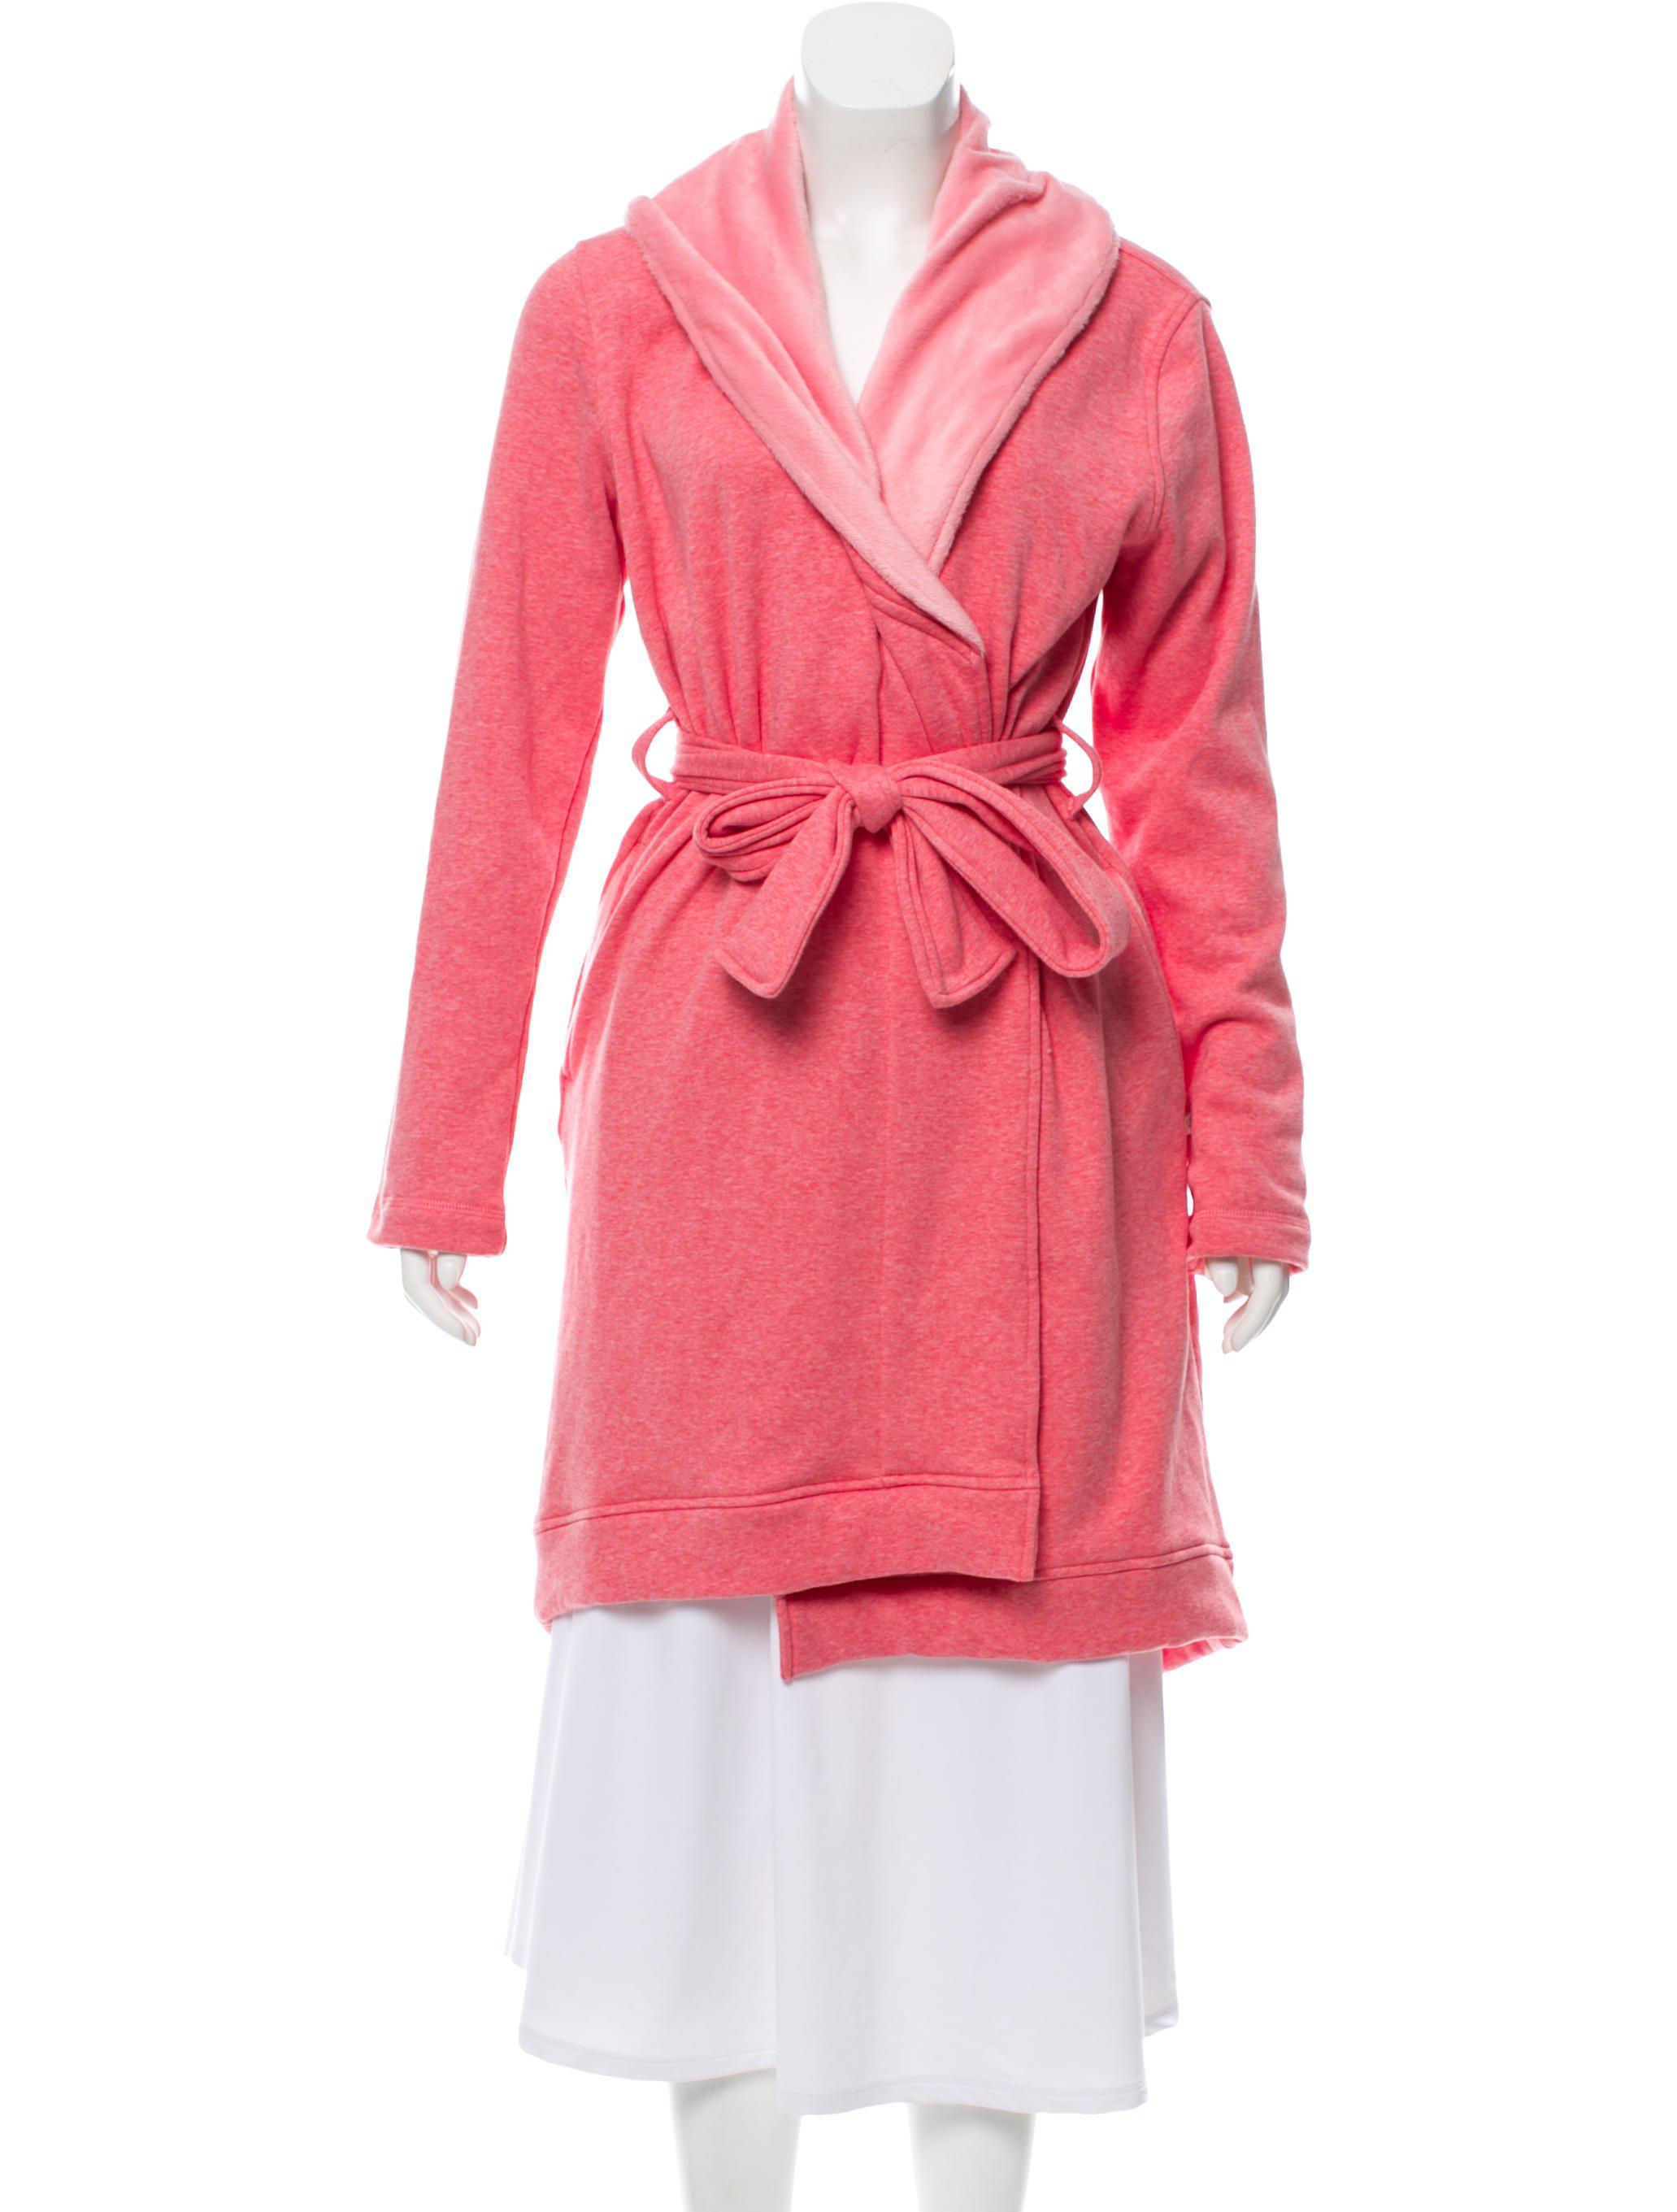 4136ee83e5e3 Lyst - Ugg Fleece-lined Lounge Robe W  Tags in Pink